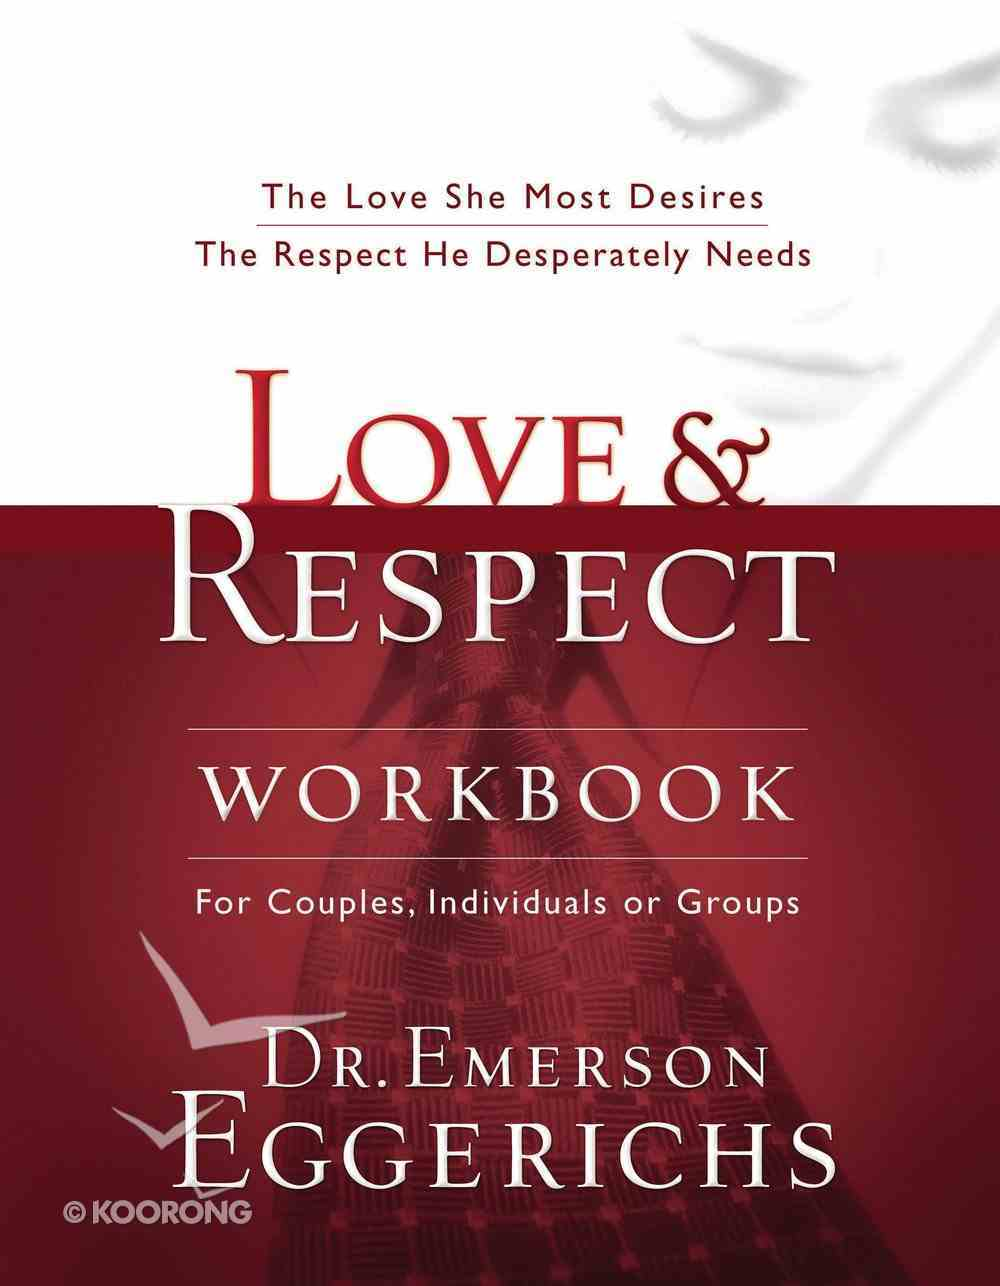 Love & Respect: The Love She Most Desires, the Respect He Desperately Needs (Workbook) eBook